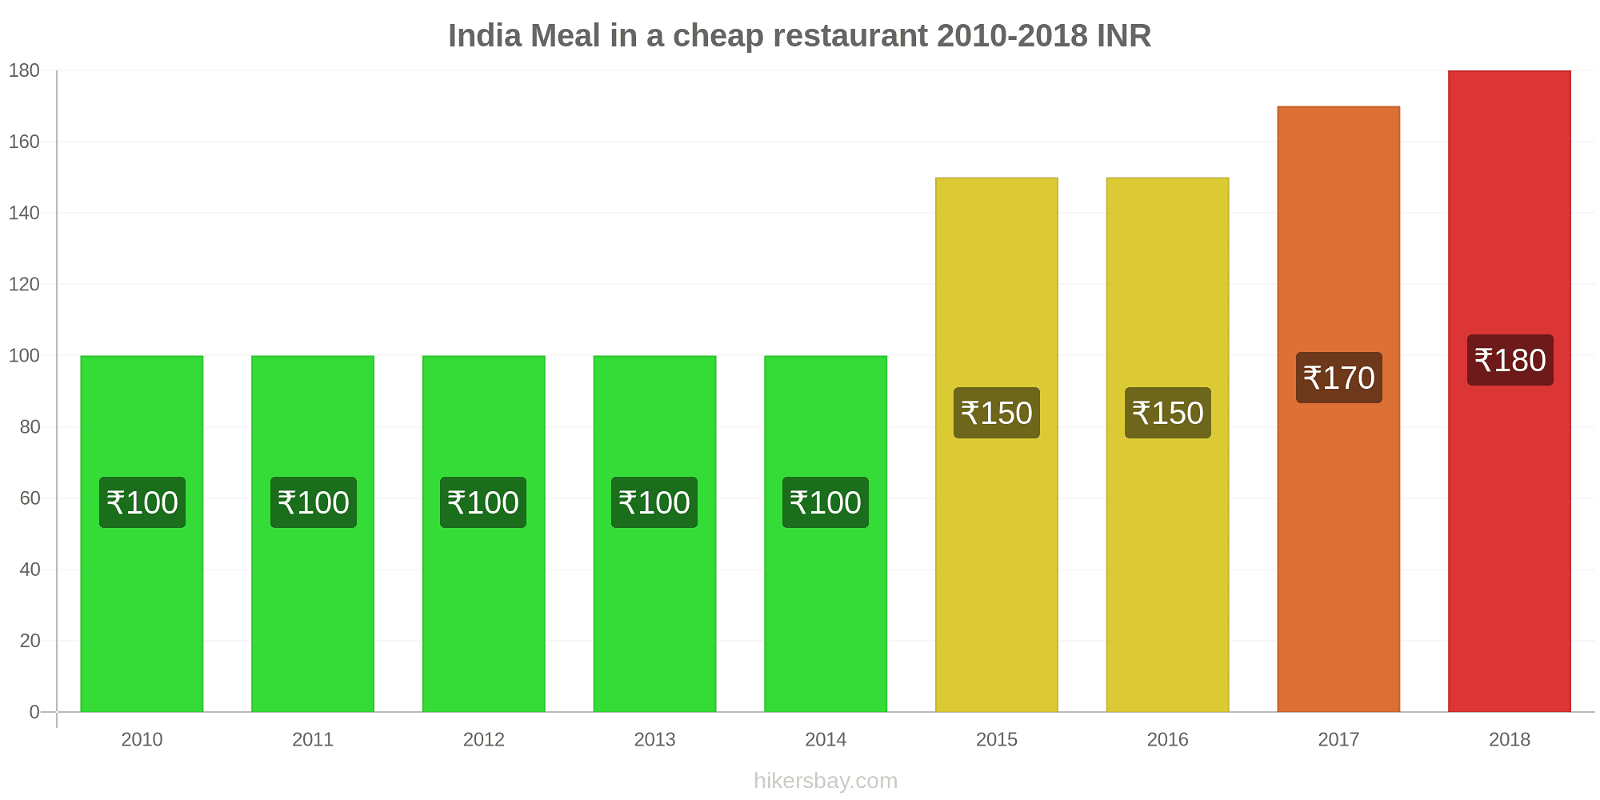 India price changes Meal in a cheap restaurant hikersbay.com